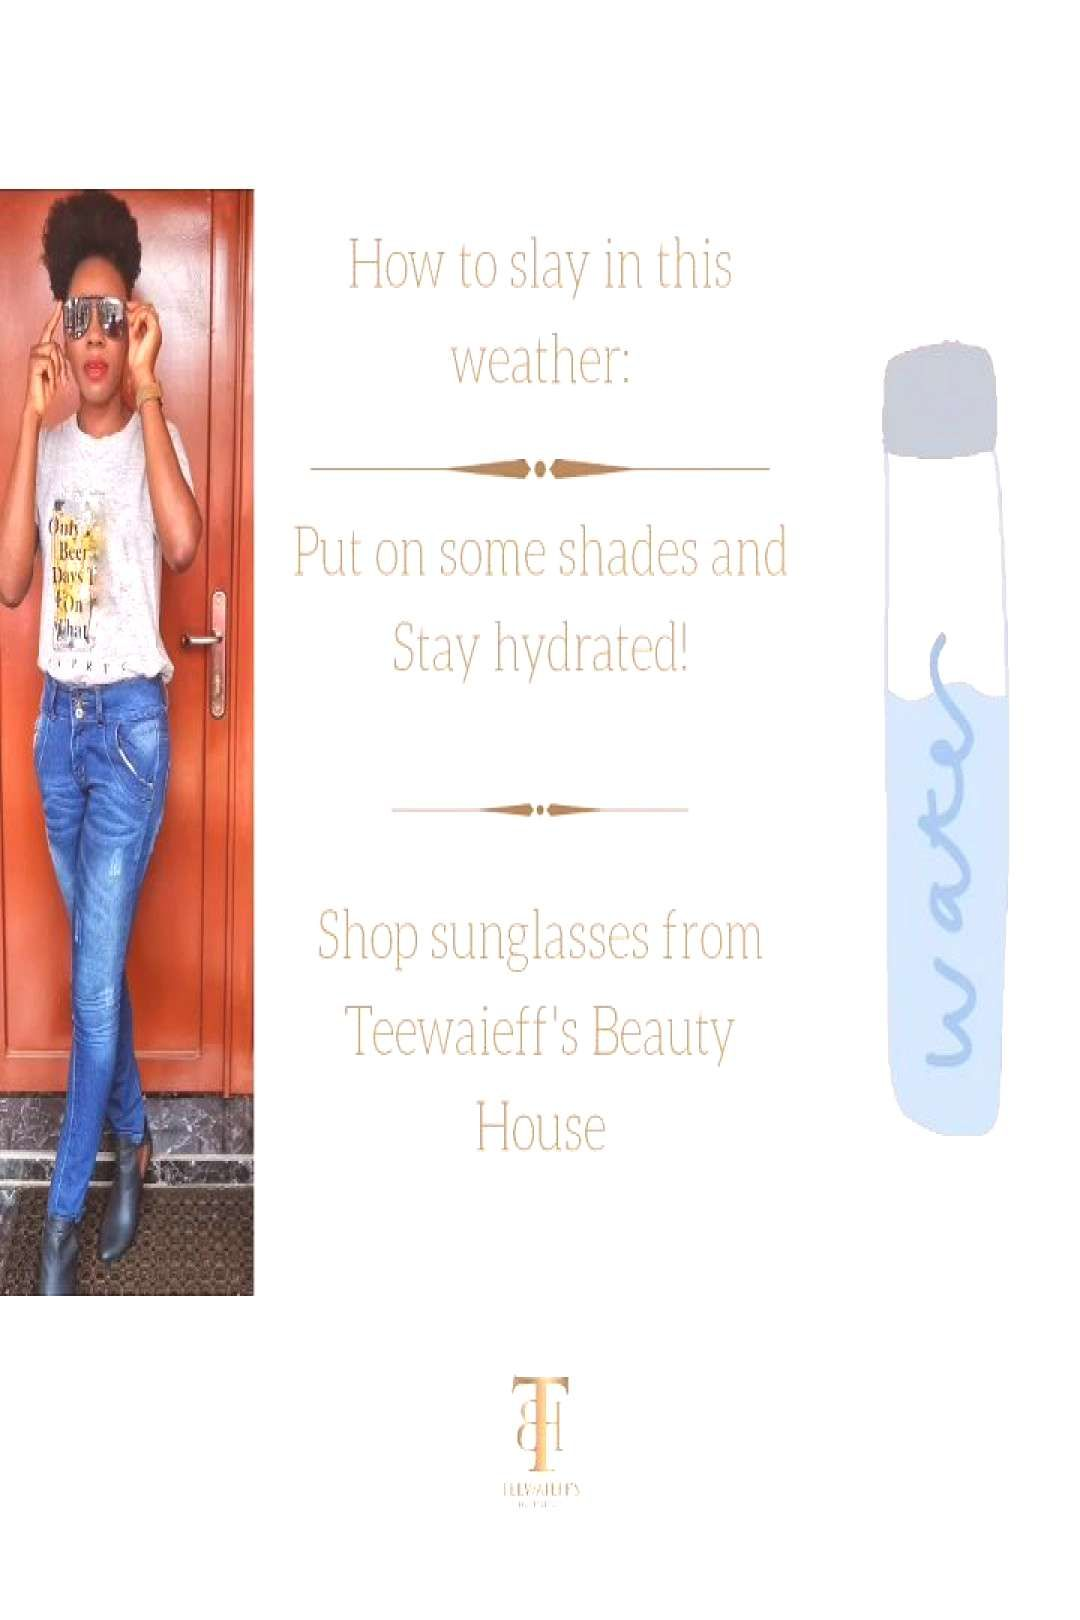 #drinkwater #literally #treating #pounding #weather #hows #head #the #you #my #is #th How's the weather treating you? My head is literally pounding. ThYou can find Drink water and more on our website.How's the weather treating y...